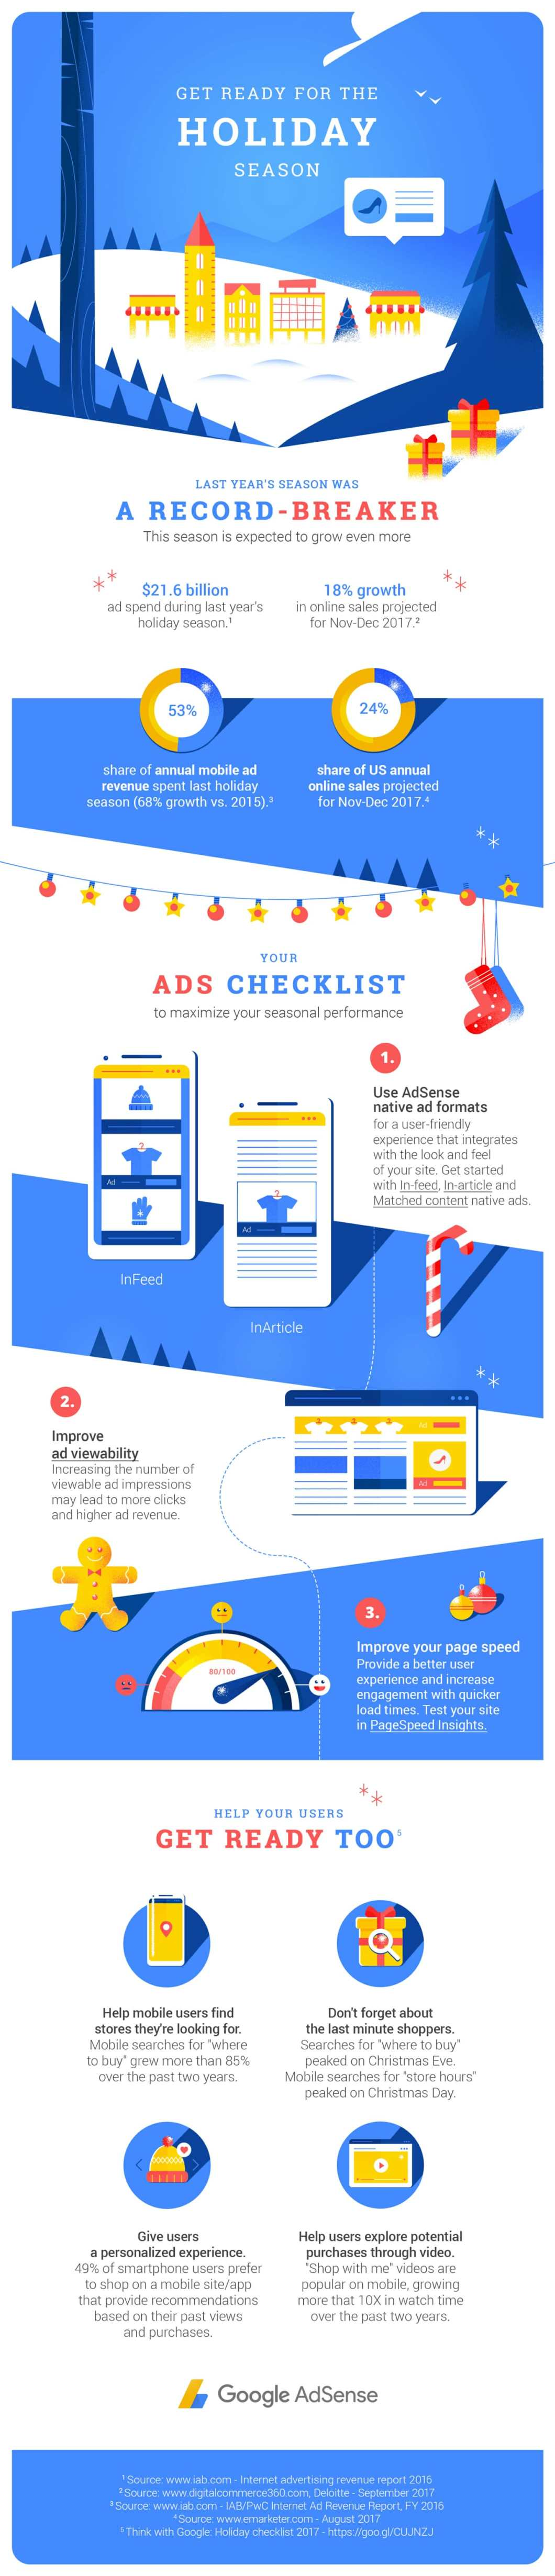 Is Your Website Ad-Ready for the Holiday Season? - Infographic